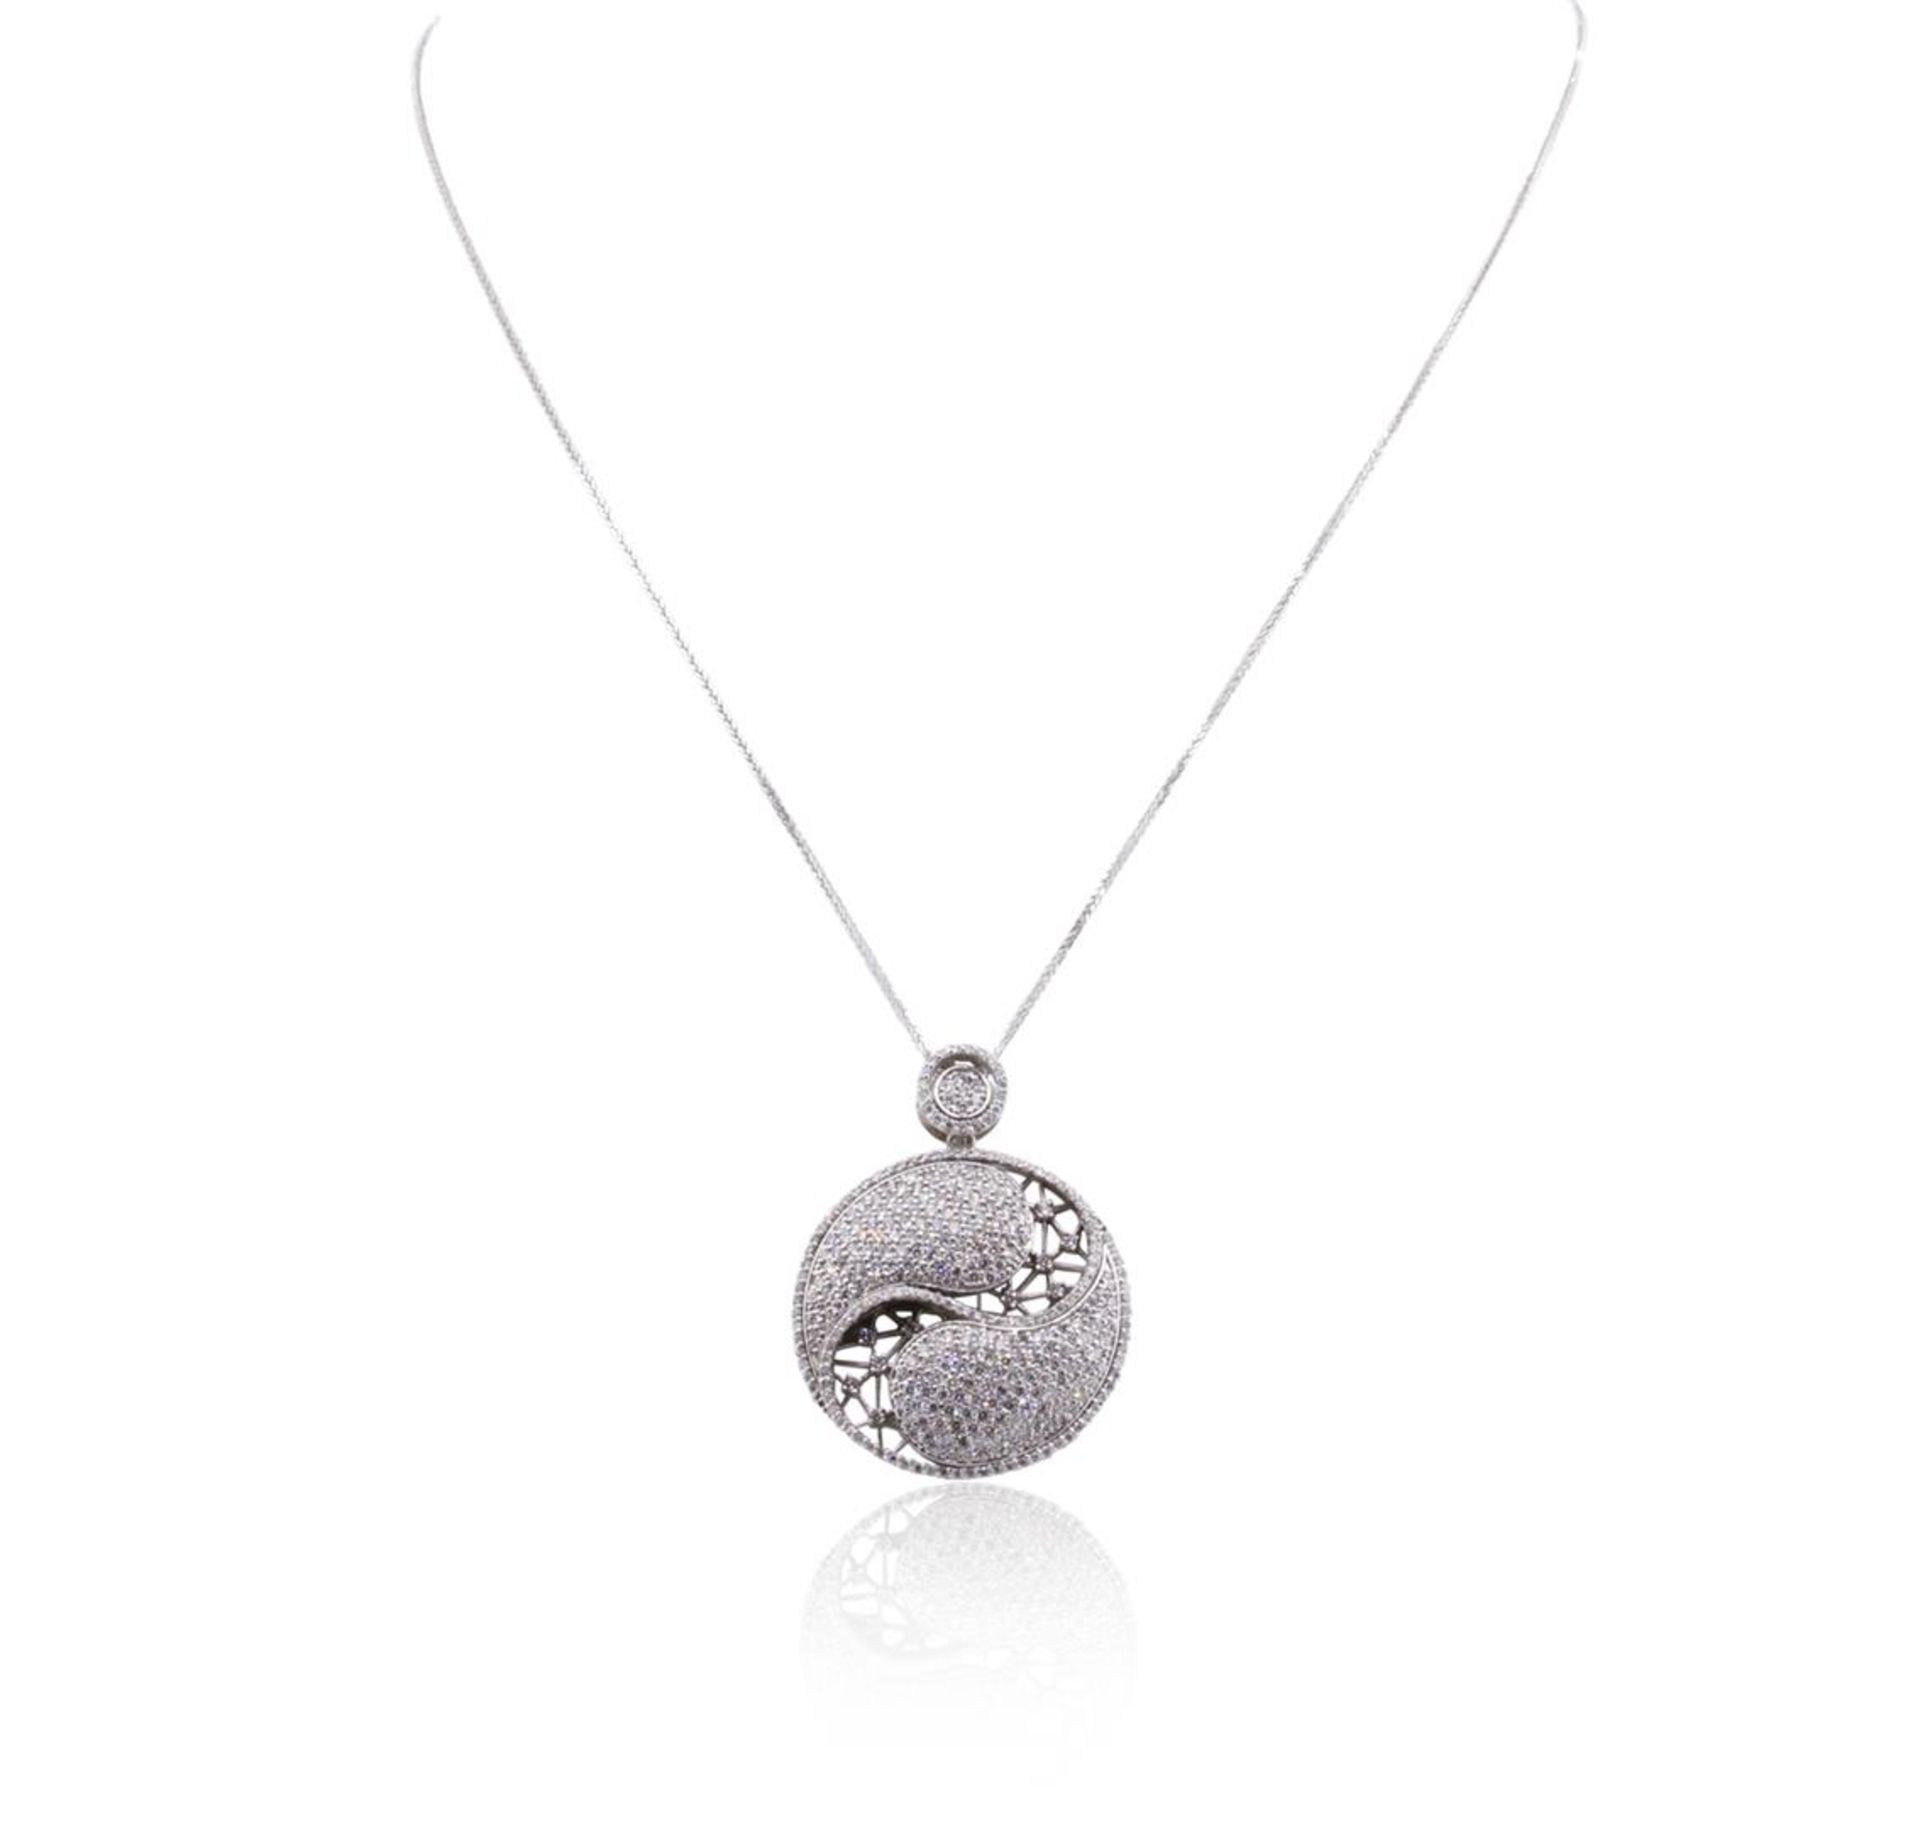 14KT White Gold 3.88 ctw Diamond Pendant With Chain - Image 2 of 3